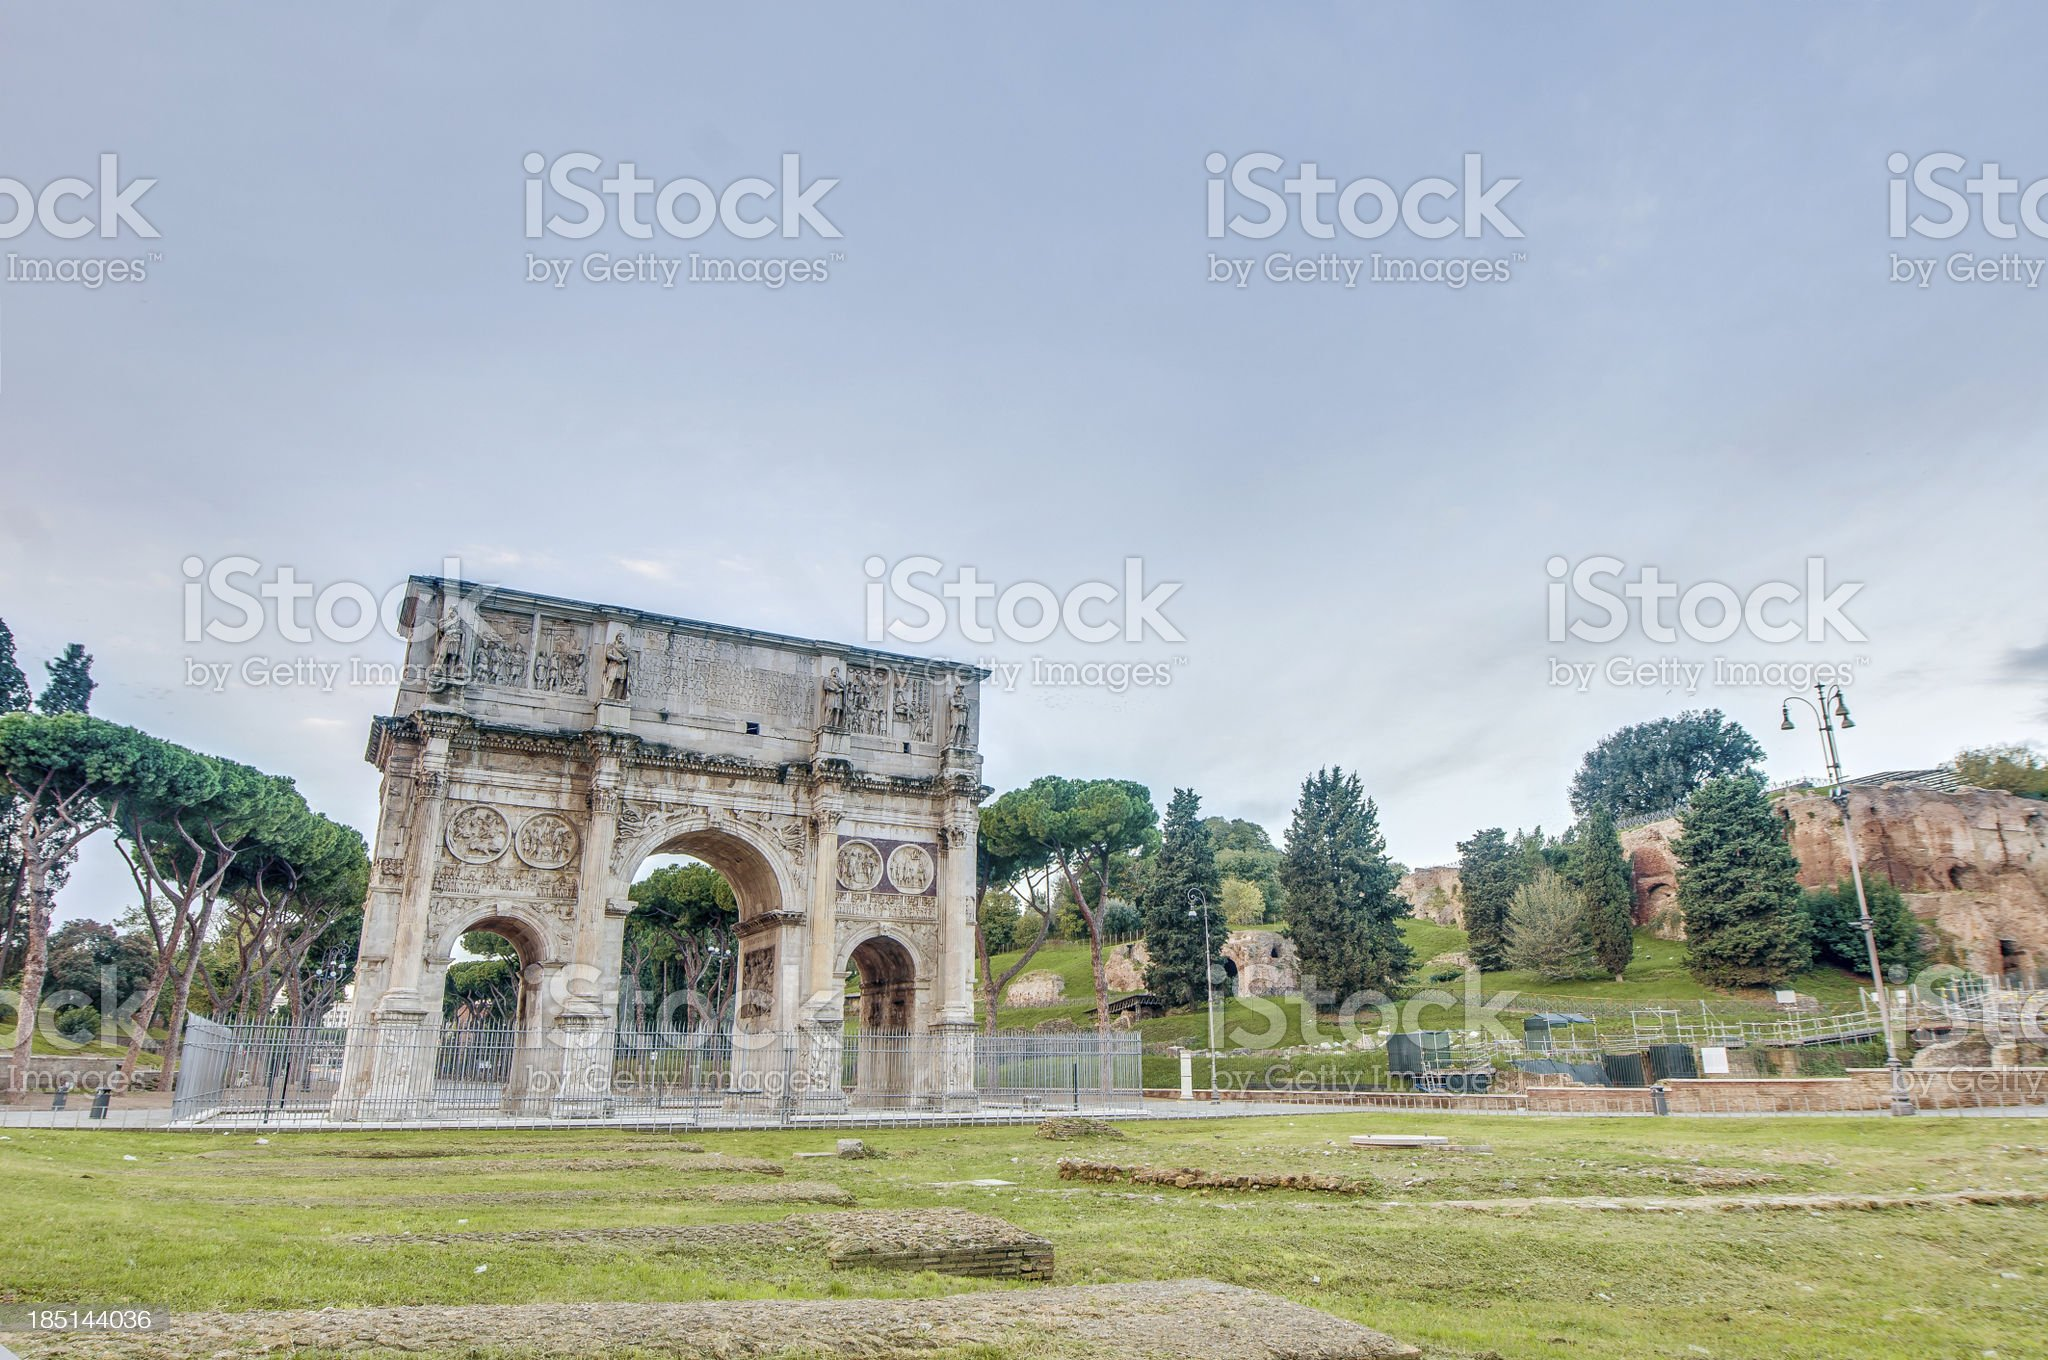 Arch of Constantine in Rome, Italy royalty-free stock photo